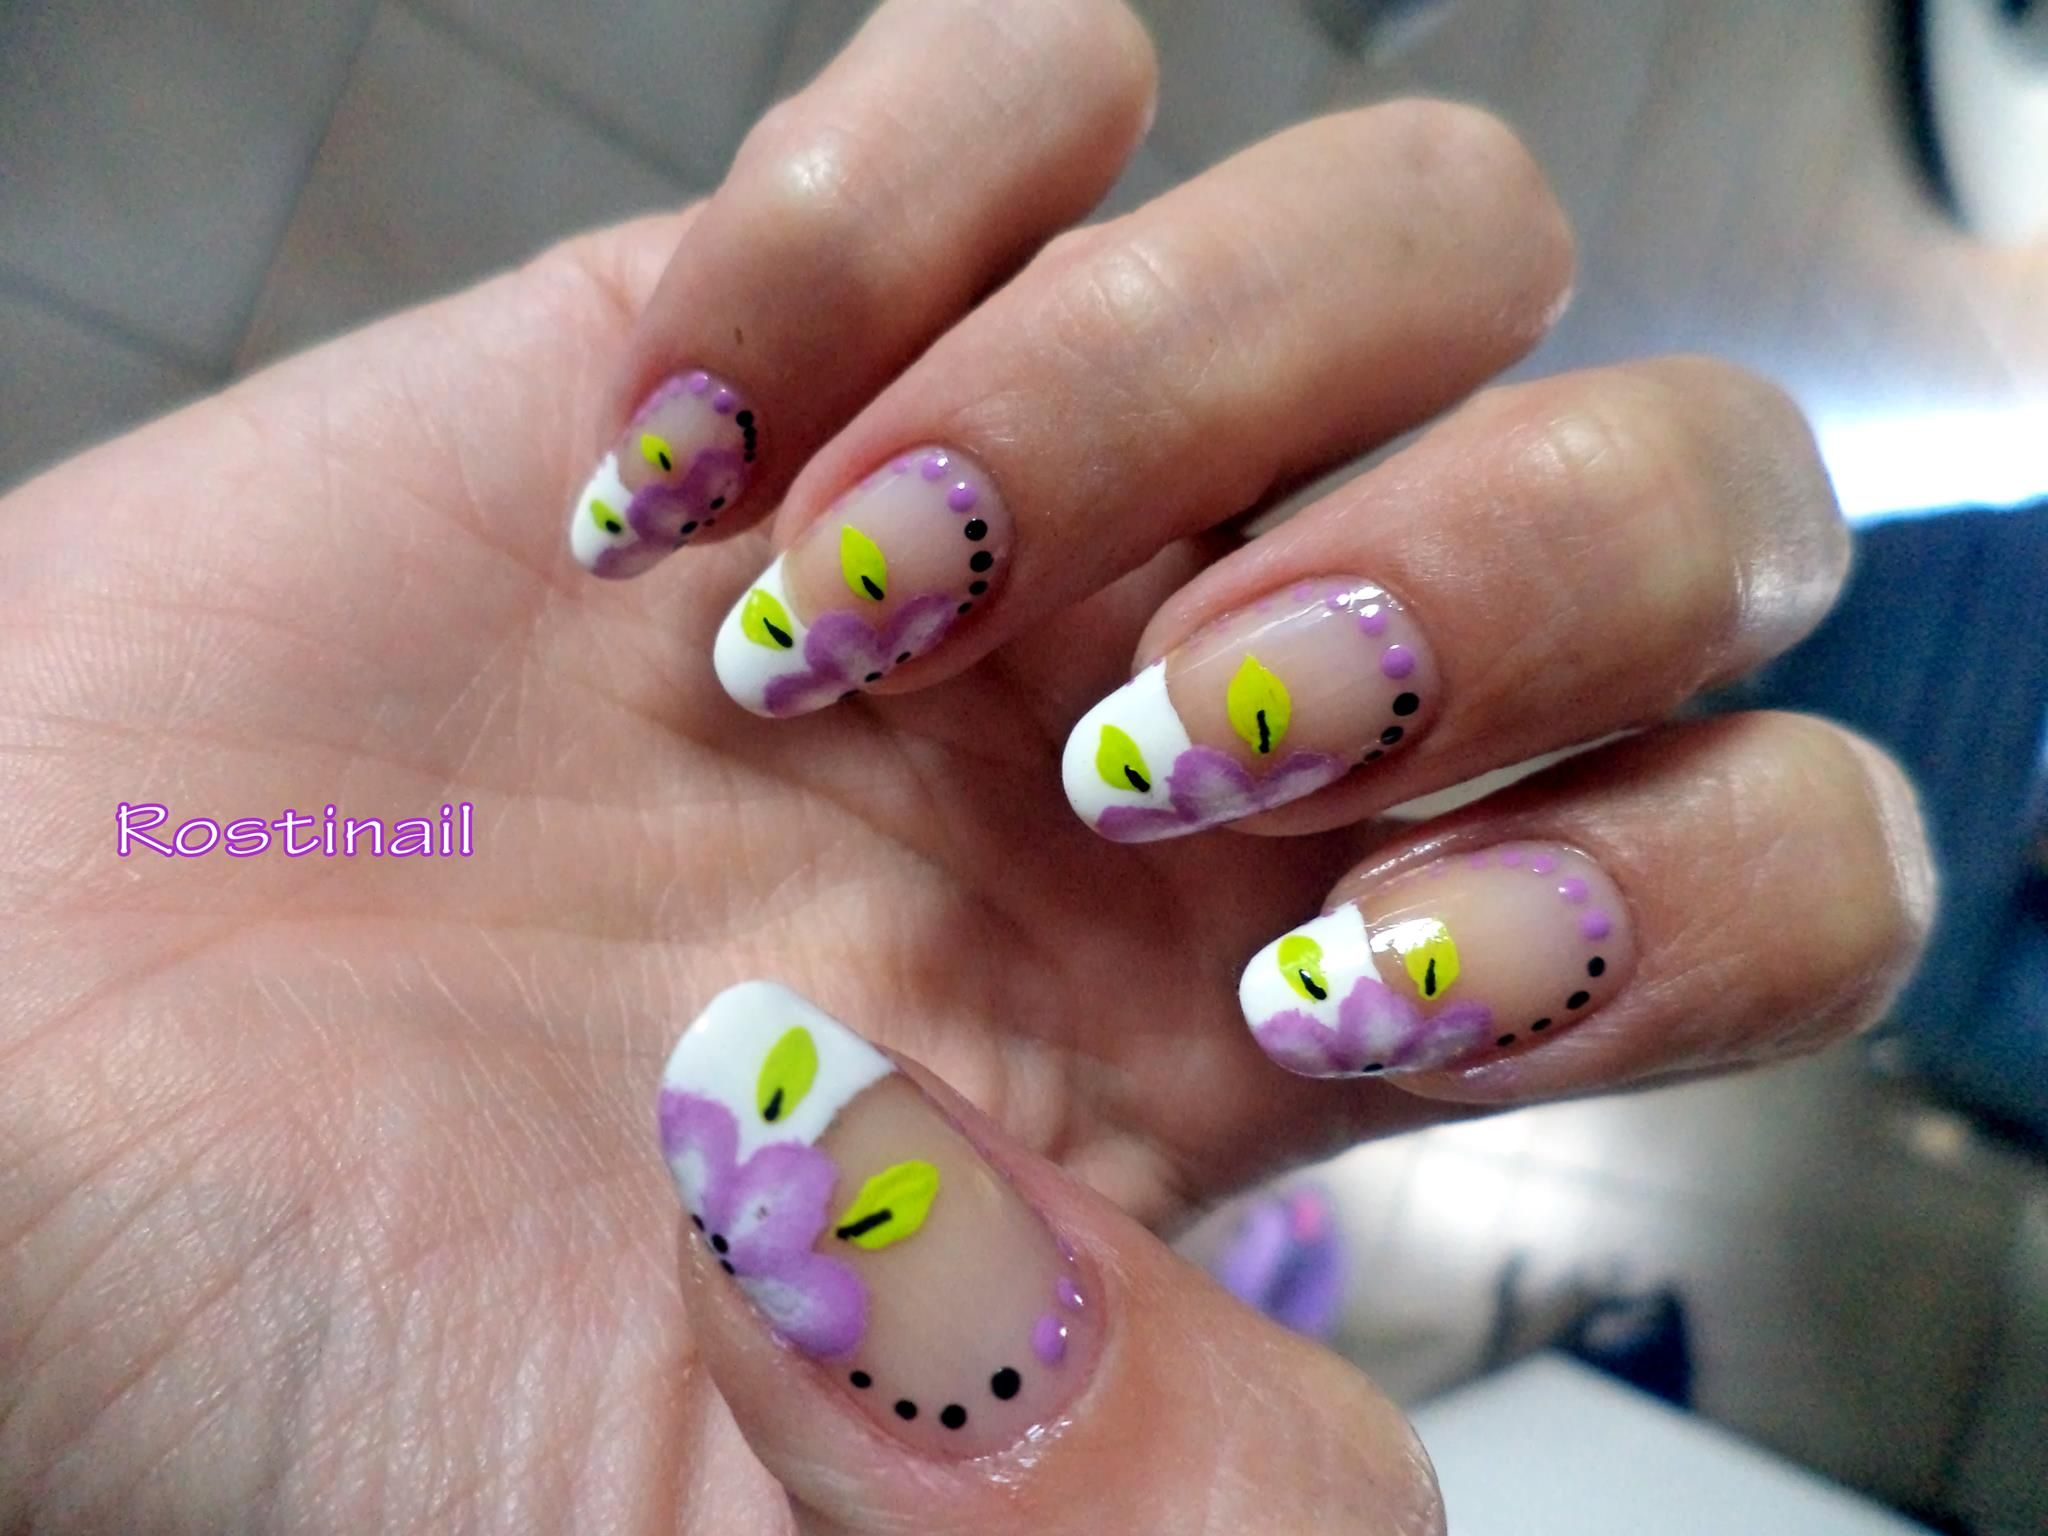 Participating In The Competition Nail Art Talent Of The Week 3